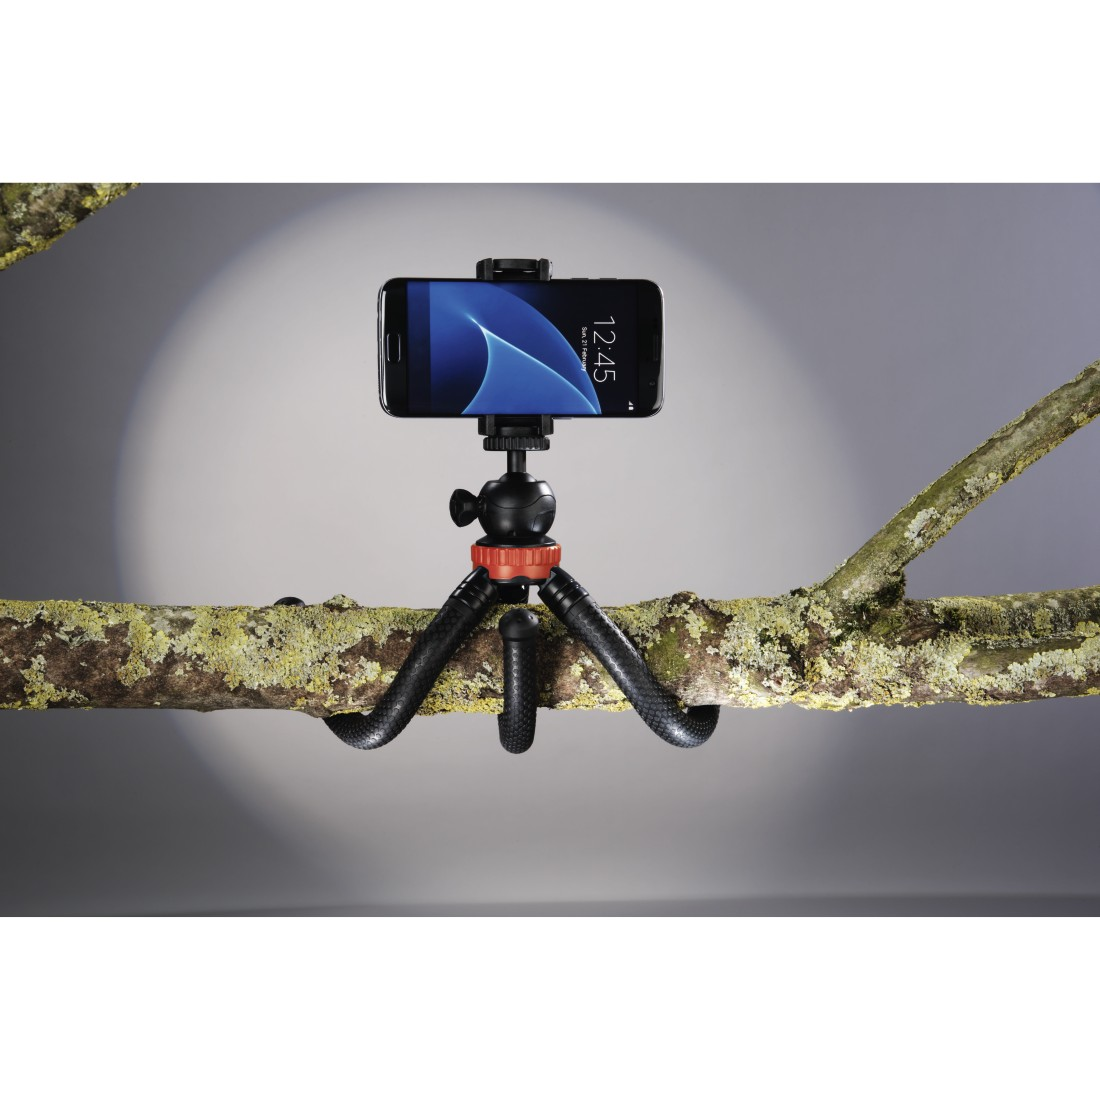 awx2 High-Res Appliance 2 - Hama, FlexPro Tripod for Smartphone, GoPro and Photo Cameras, 27 cm, red